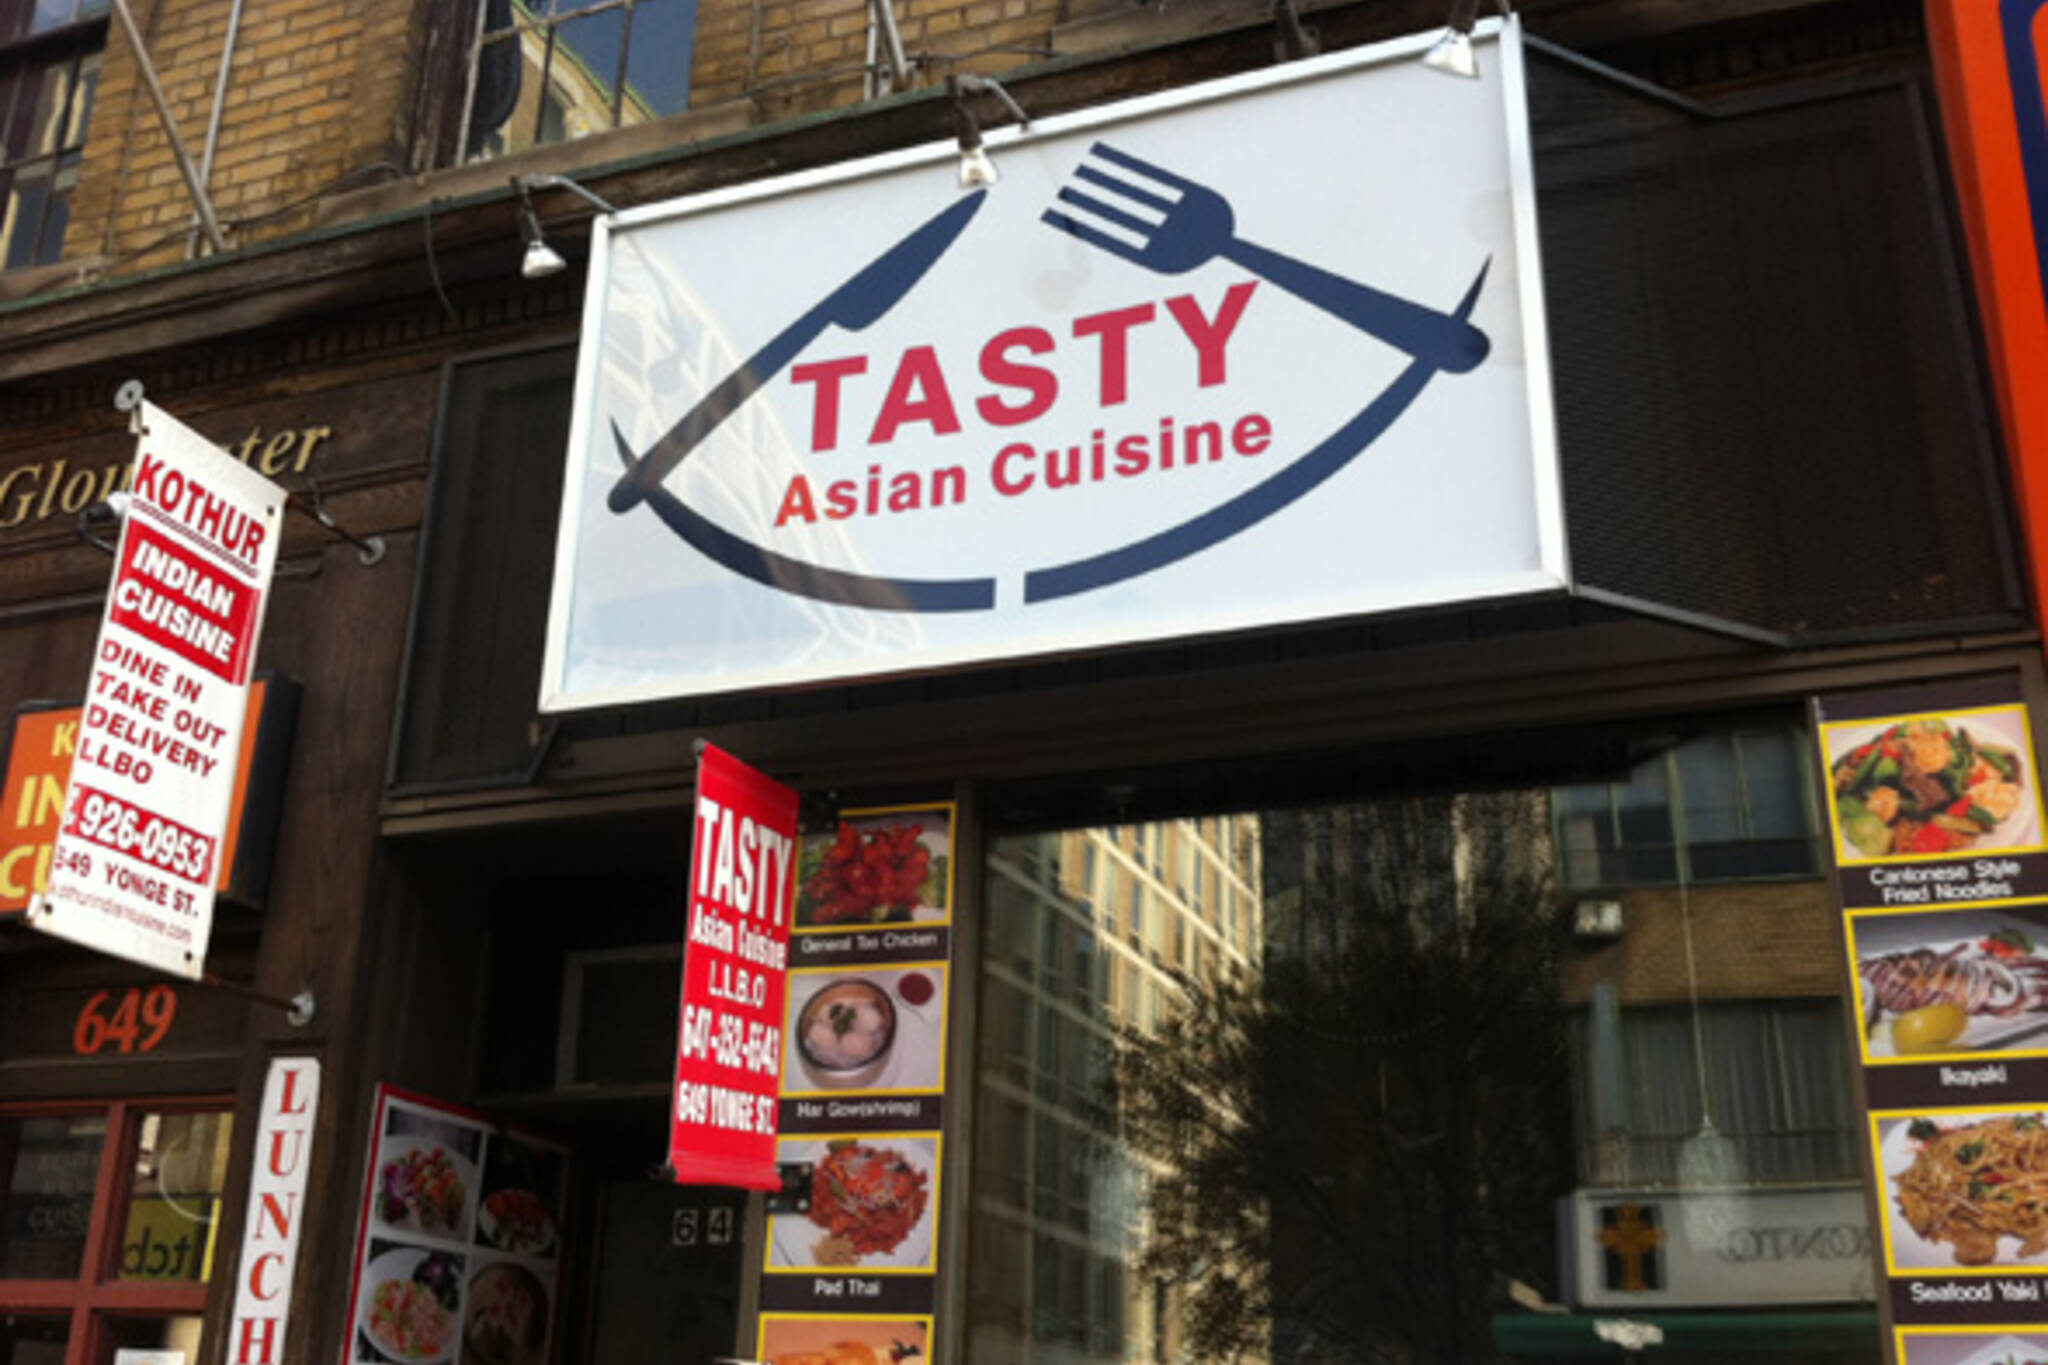 Tasty Asian Cuisine